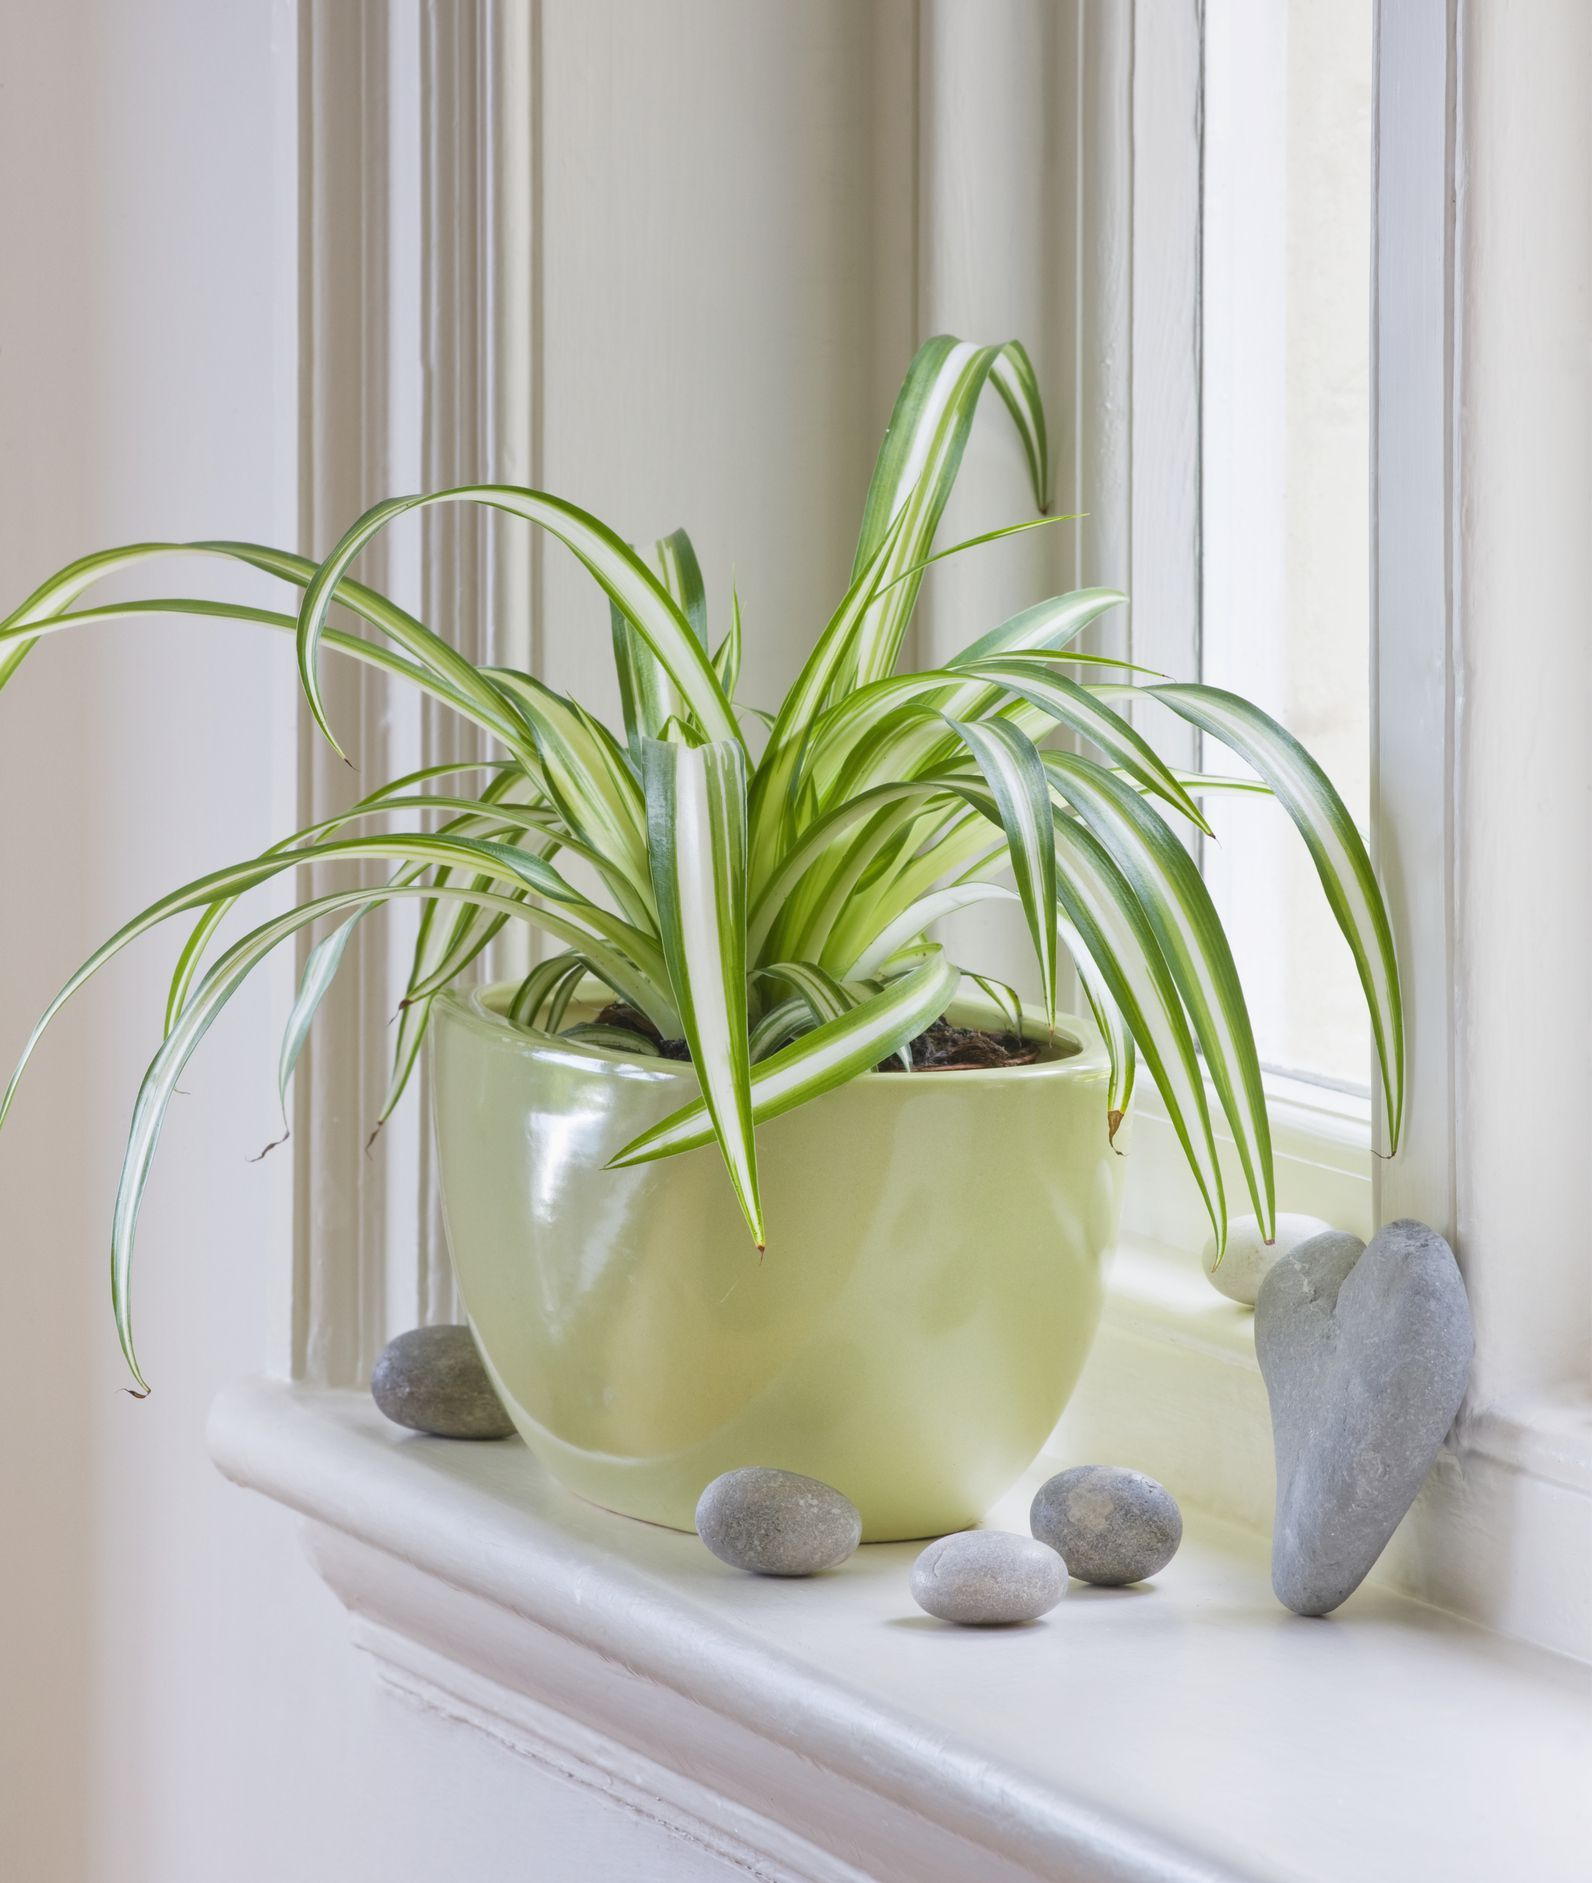 Growing Spider Plants Indoors: Houseplants That Are Perfect For Gardening Beginners